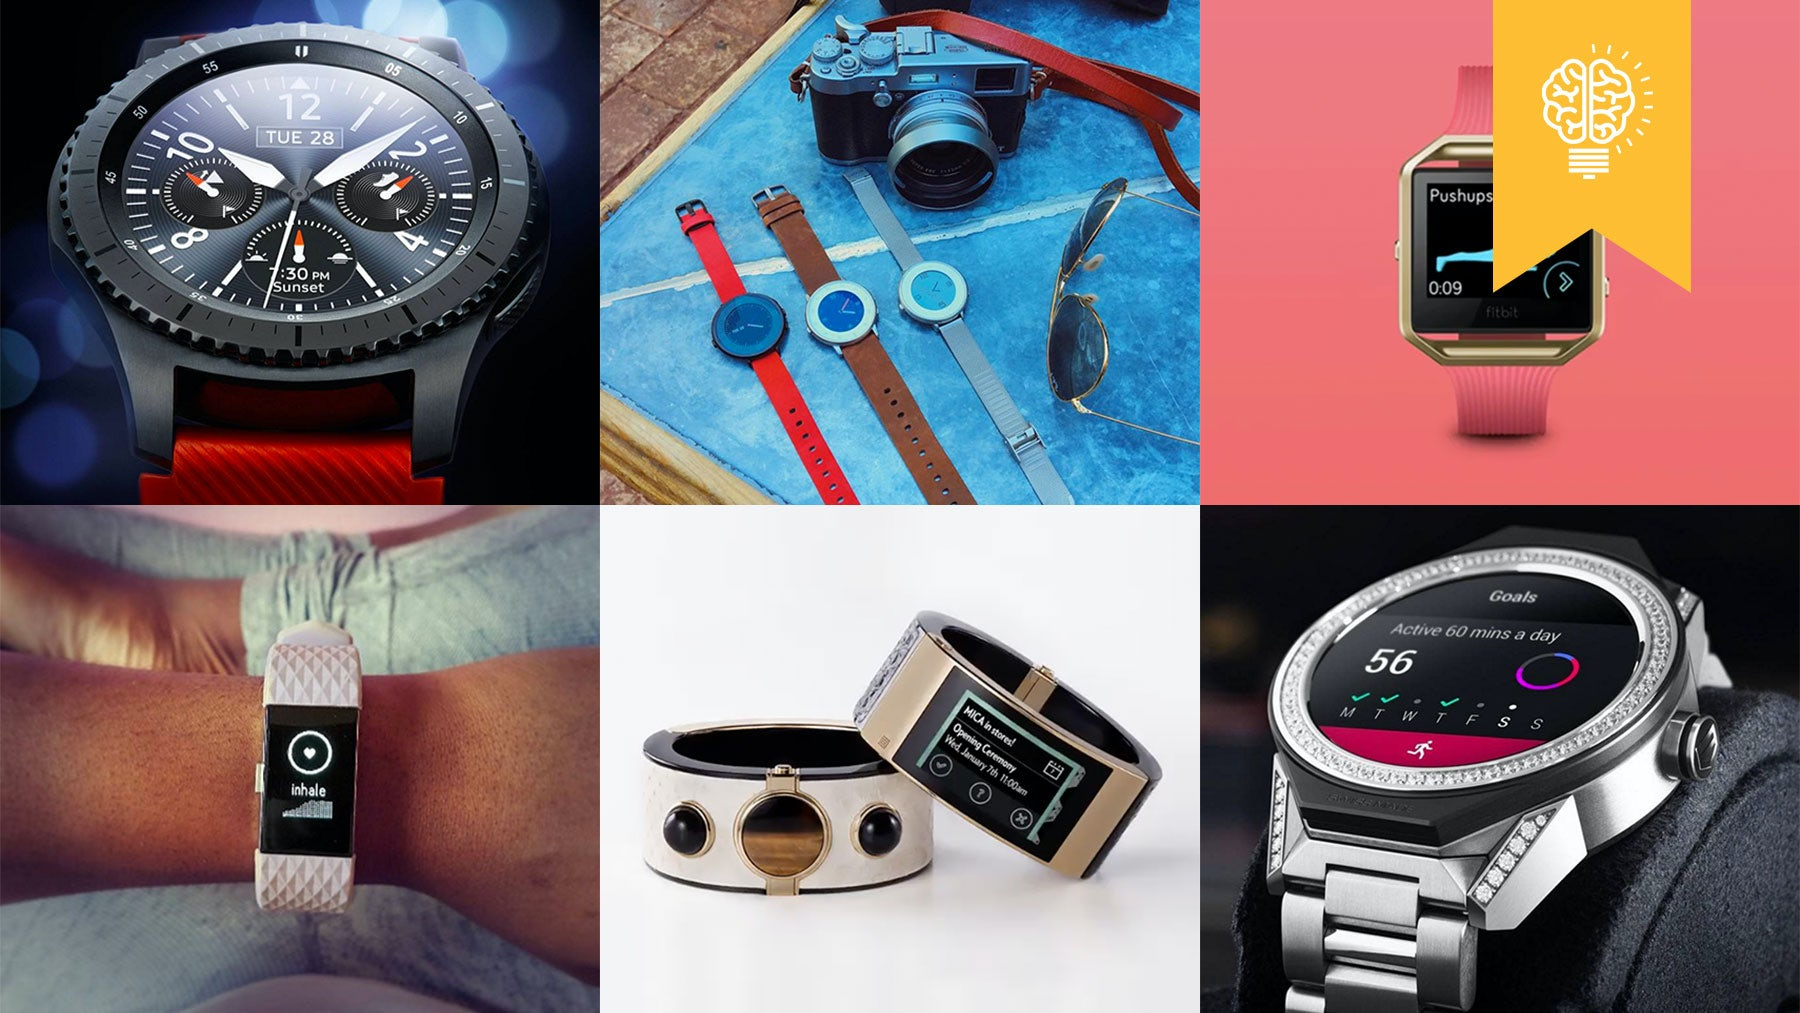 Source: (clockwise from top left) @samsungmobile, @getpebble, @fitbit, @tagheuer_russia, @openingceremony, @fitbit.